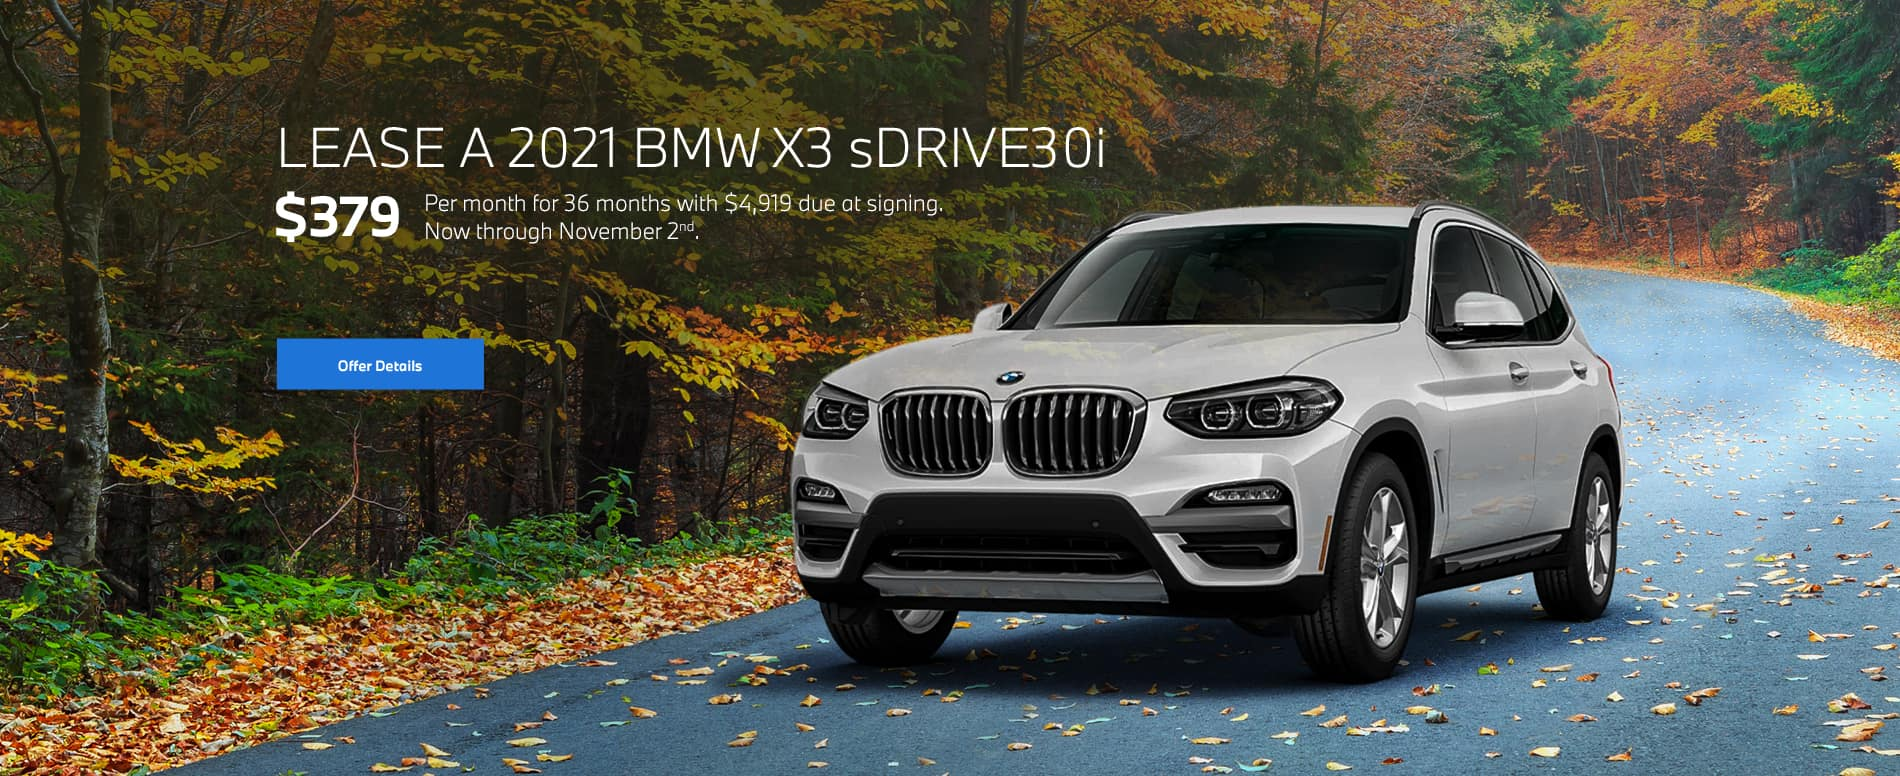 X3 sDrive30i - Lease a 2021 BMW X3 sDrive30i for $379/month for 36 months ($4,919 due at signing now through November 2nd).